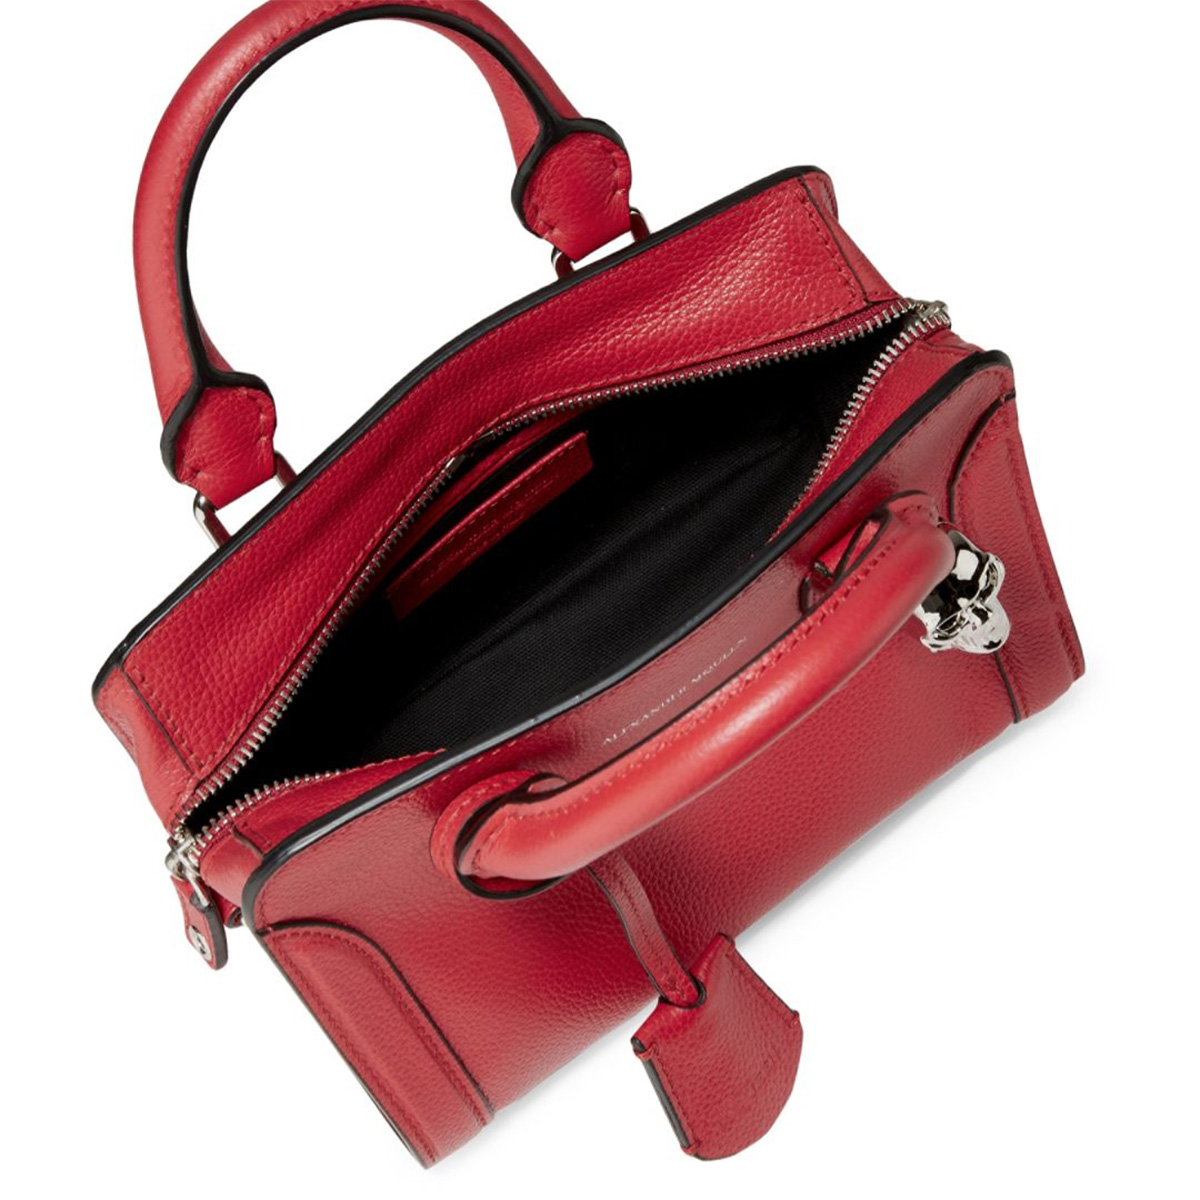 McQueen Bag Red